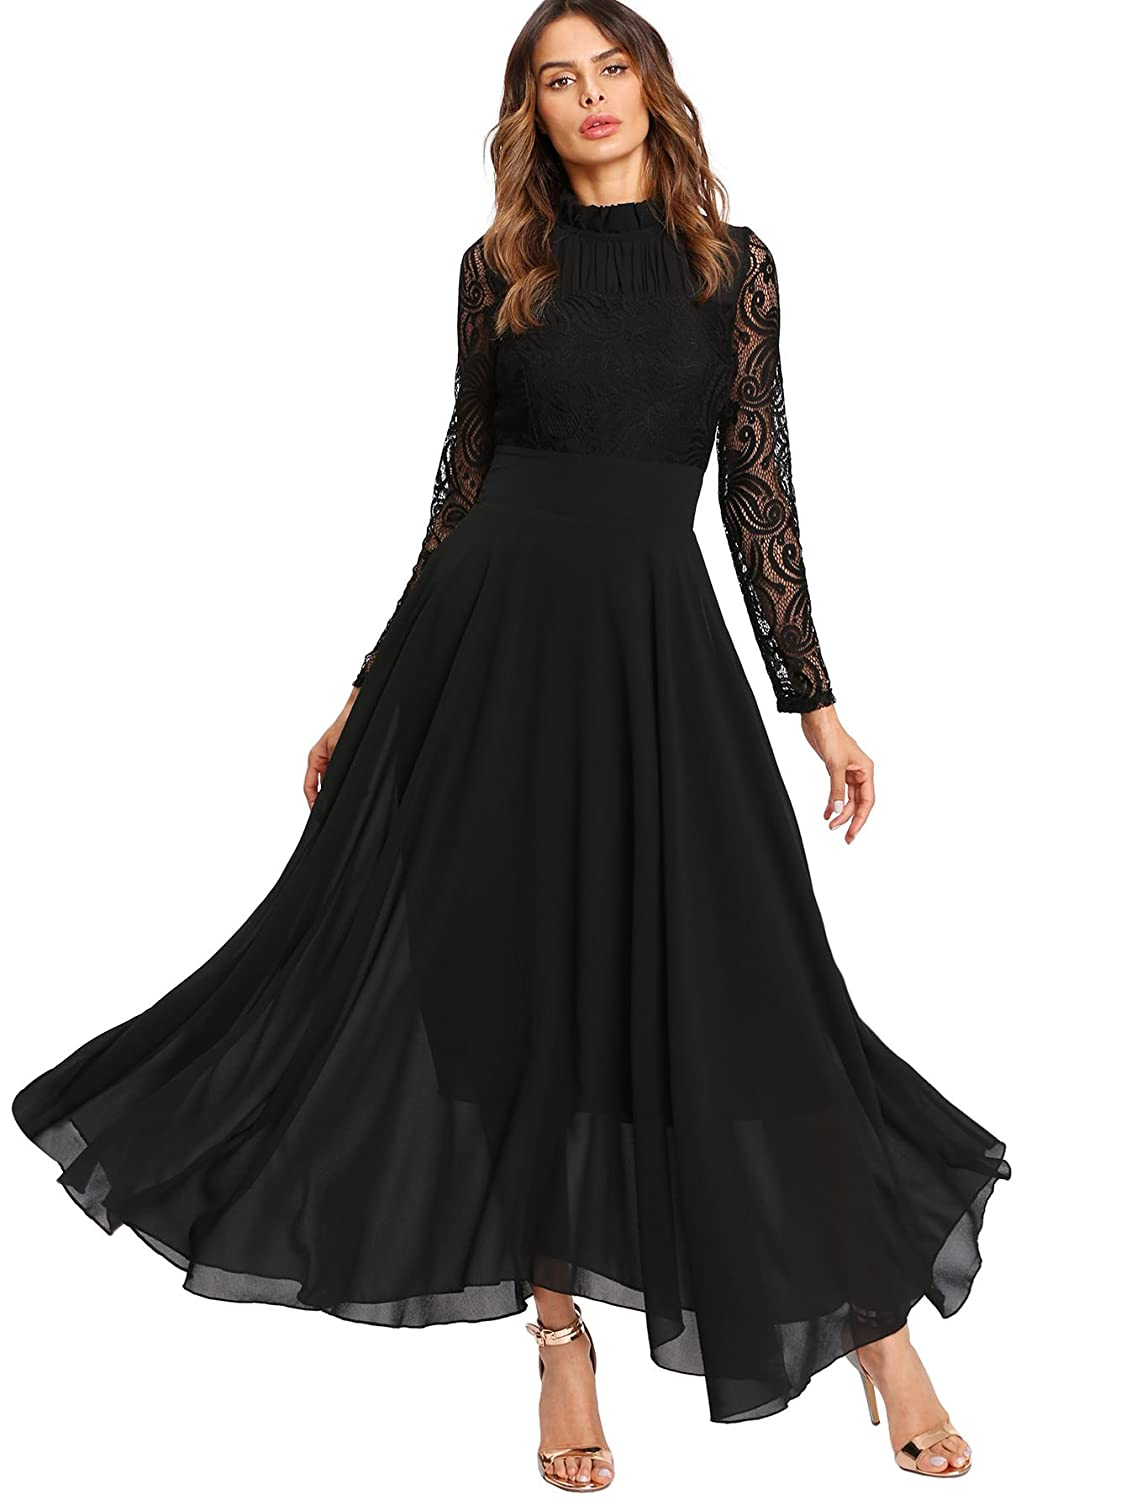 Steampunk Dresses | Women & Girl Costumes Milumia Womens Vintage Floral Lace Long Sleeve Ruched Neck Flowy Long Dress $28.99 AT vintagedancer.com